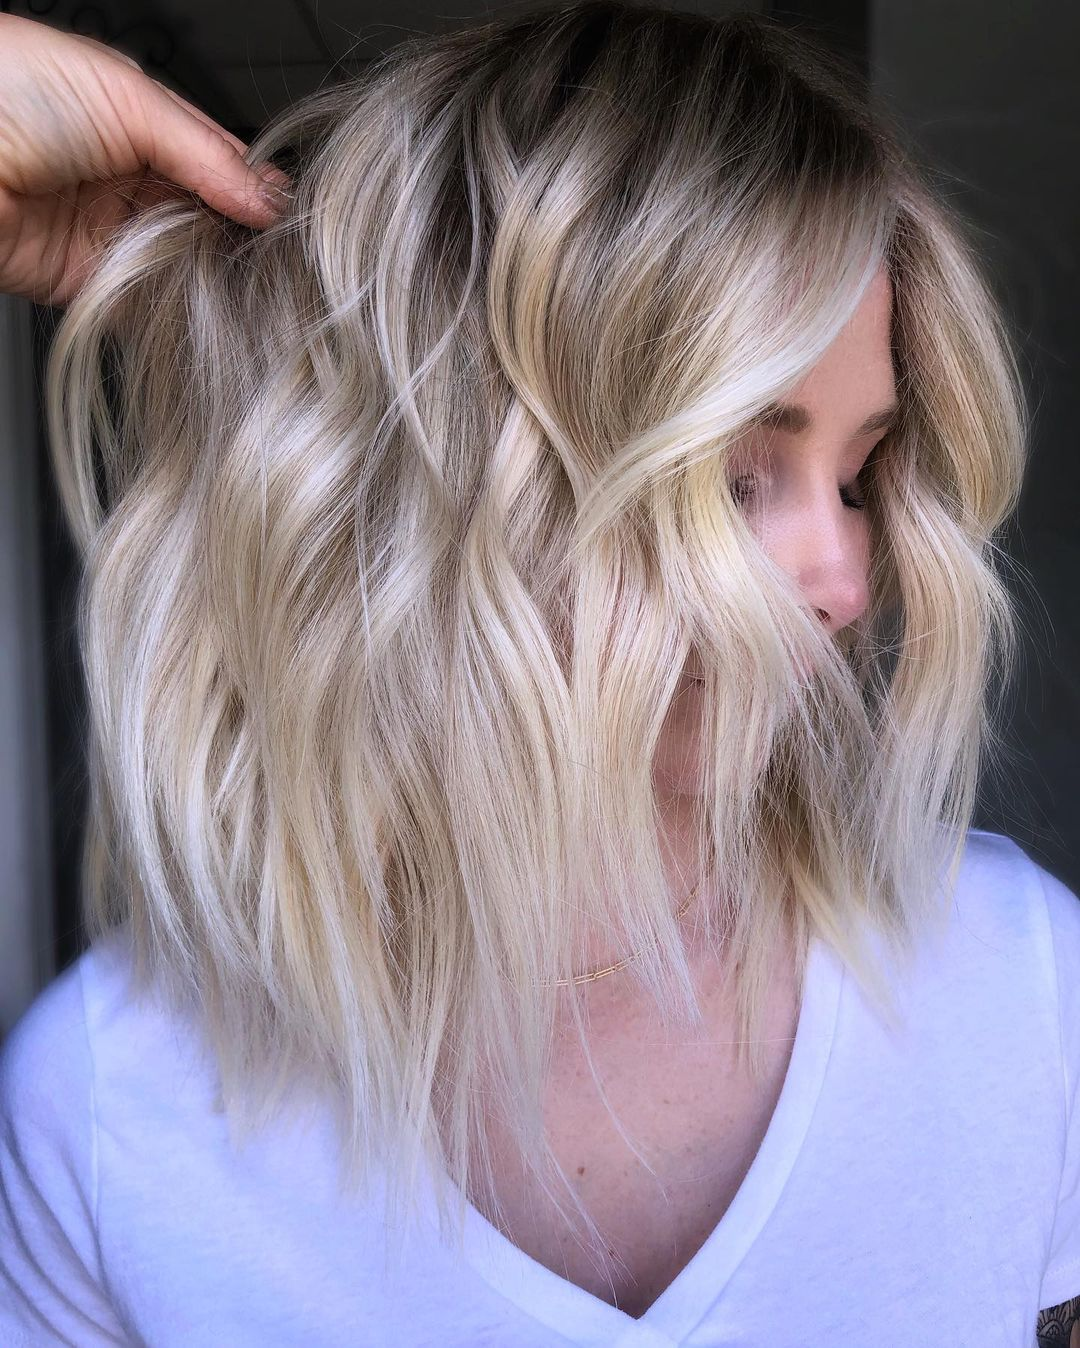 Blonde Hair with Silver Highlights